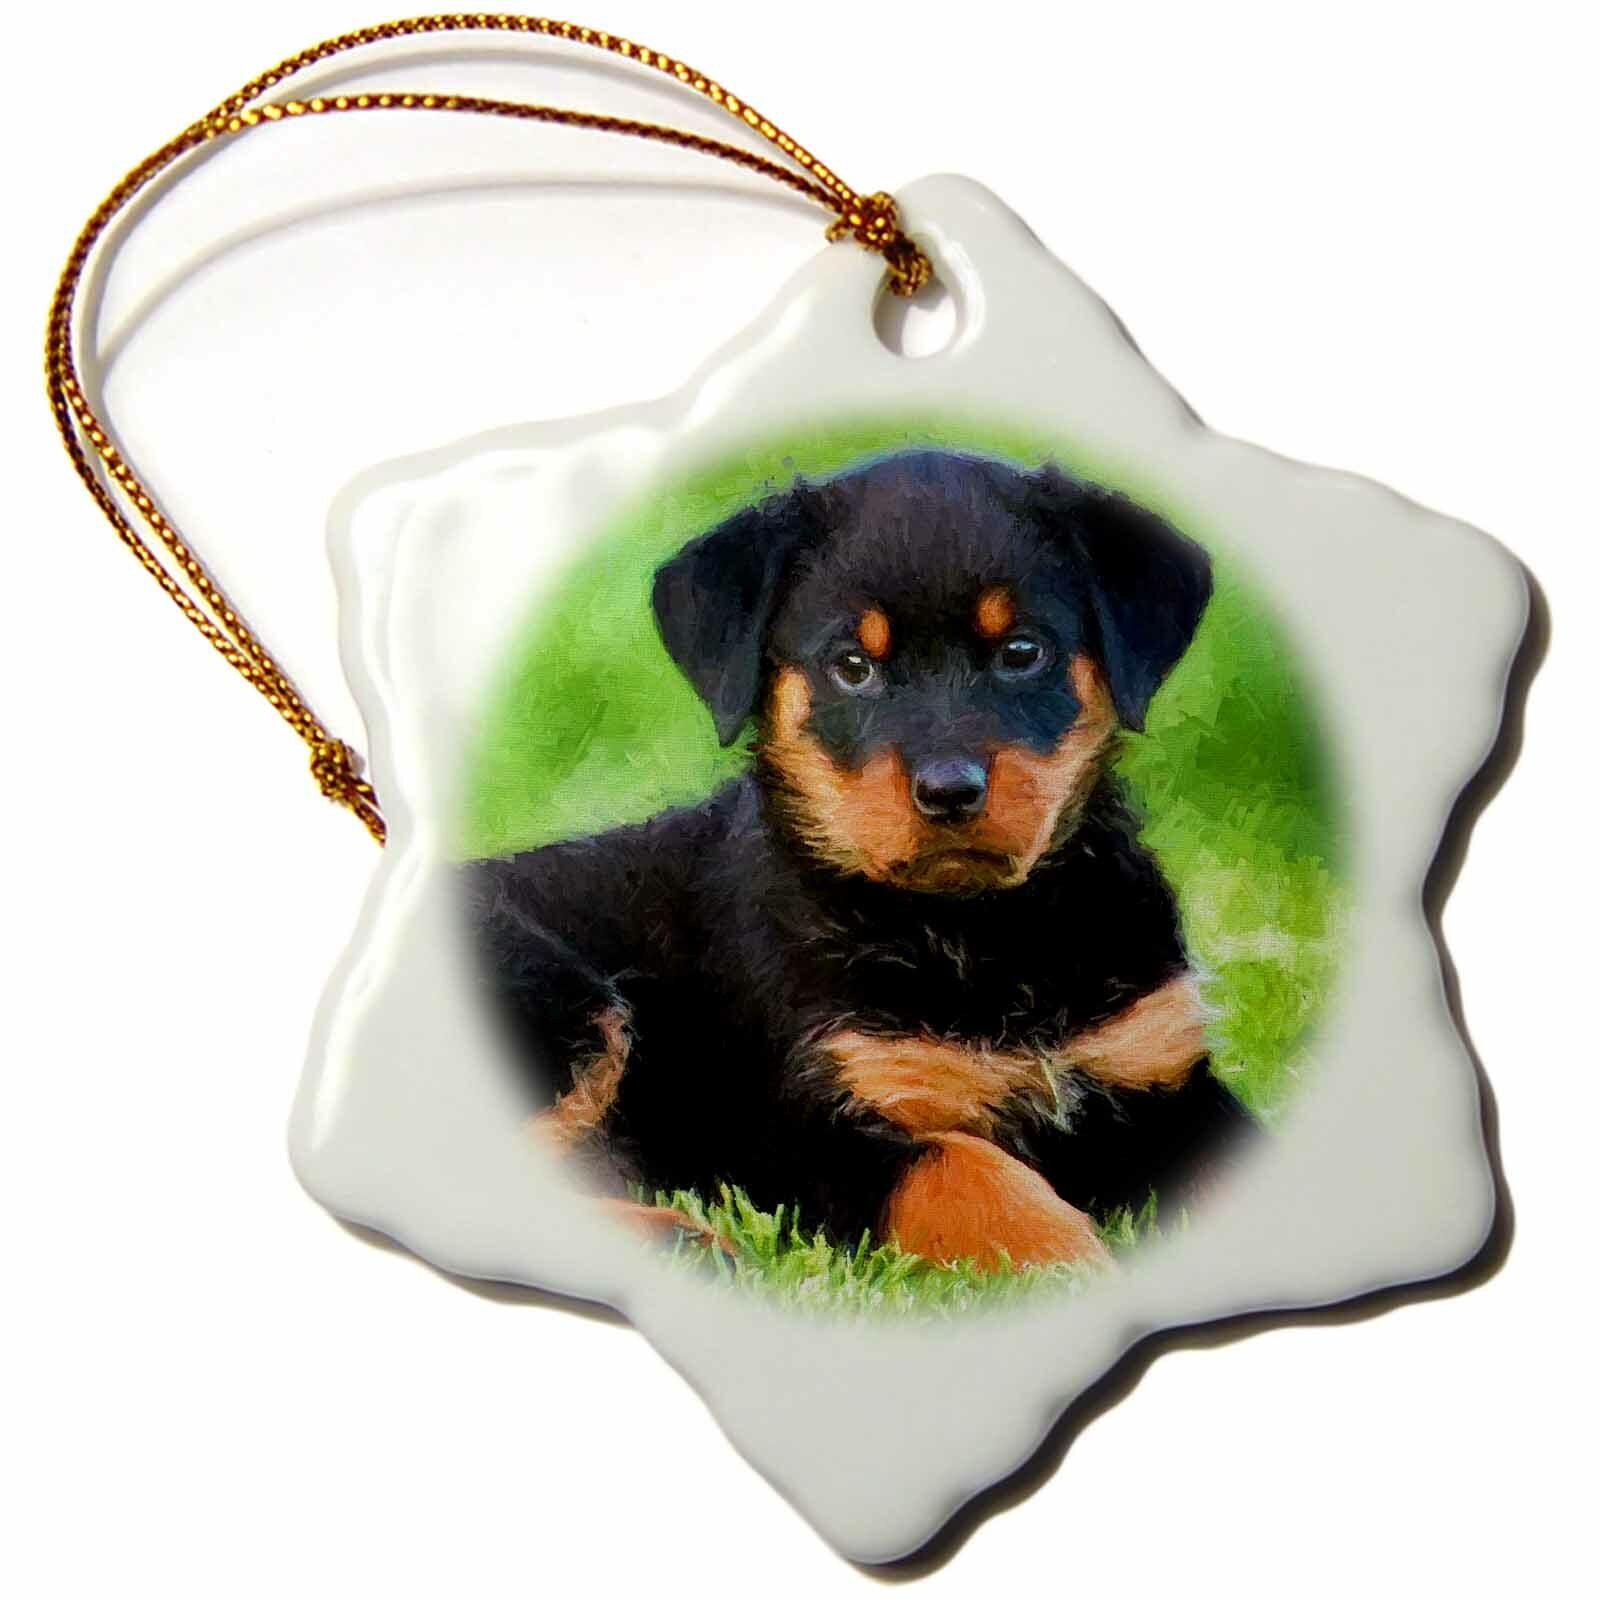 The Holiday Aisle Cute Rottweiler Puppy Dog Snowflake Holiday Shaped Ornament Wayfair